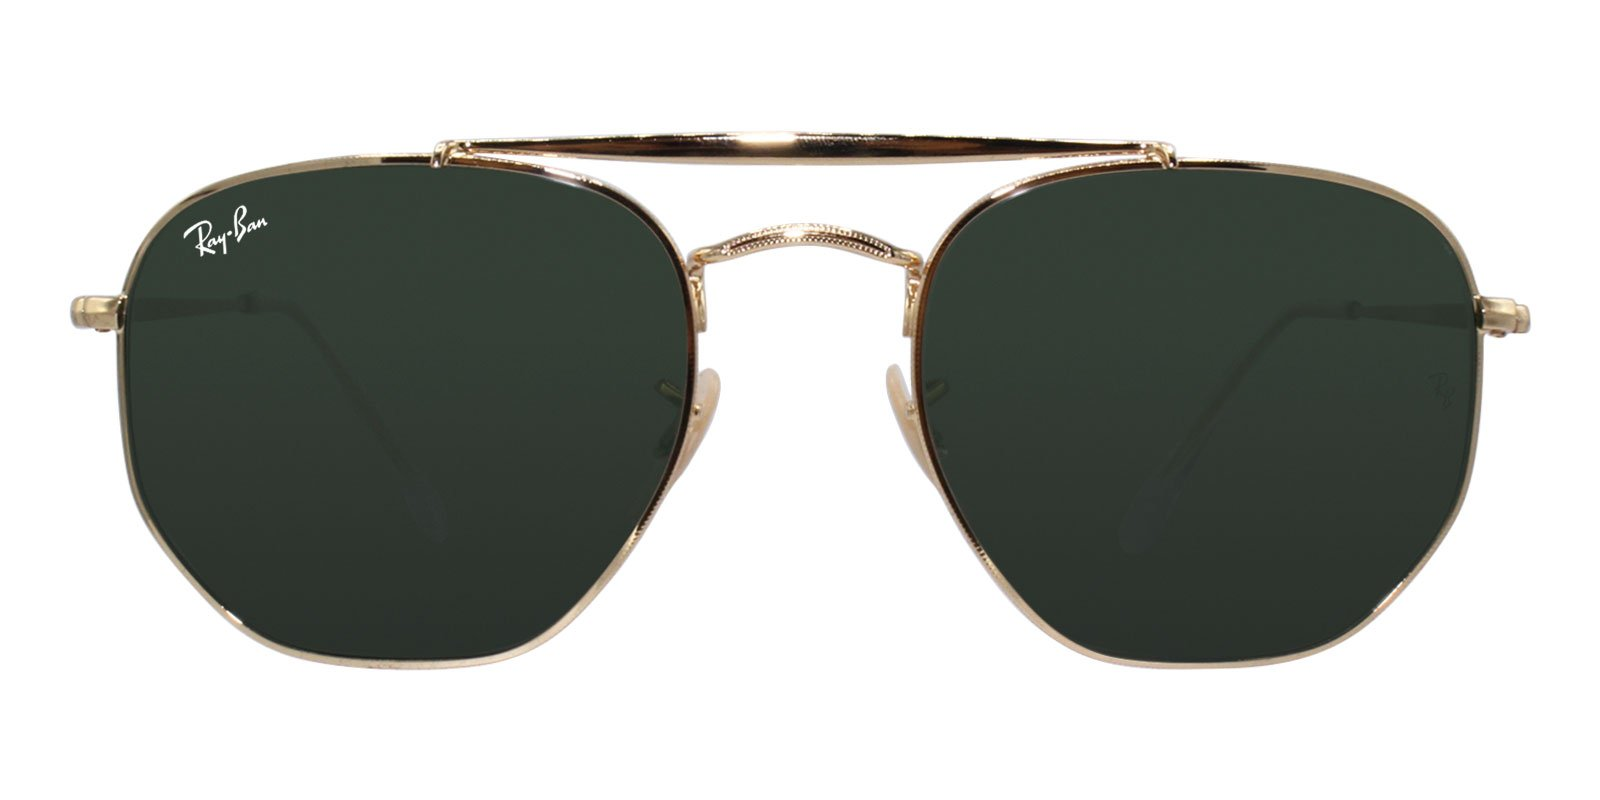 Ray Ban - RB3648 Gold Oval Unisex Sunglasses - 54mm